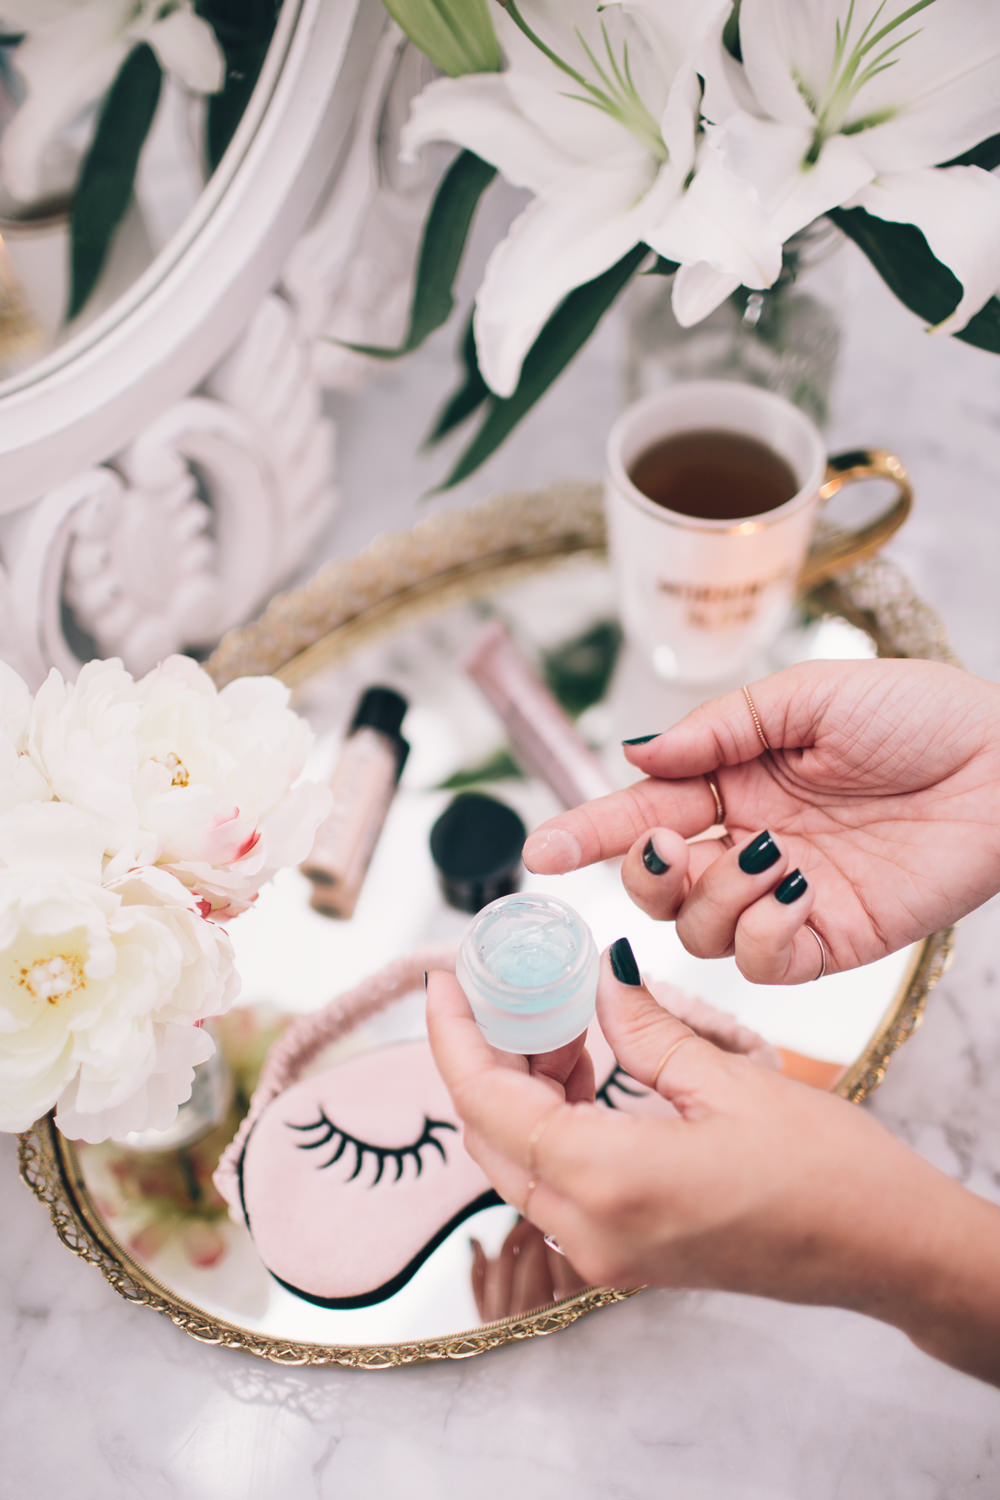 Caitlin Lindquist of the beauty blog Dash of Darling shares ways to sleep soundly and get your beauty sleep.